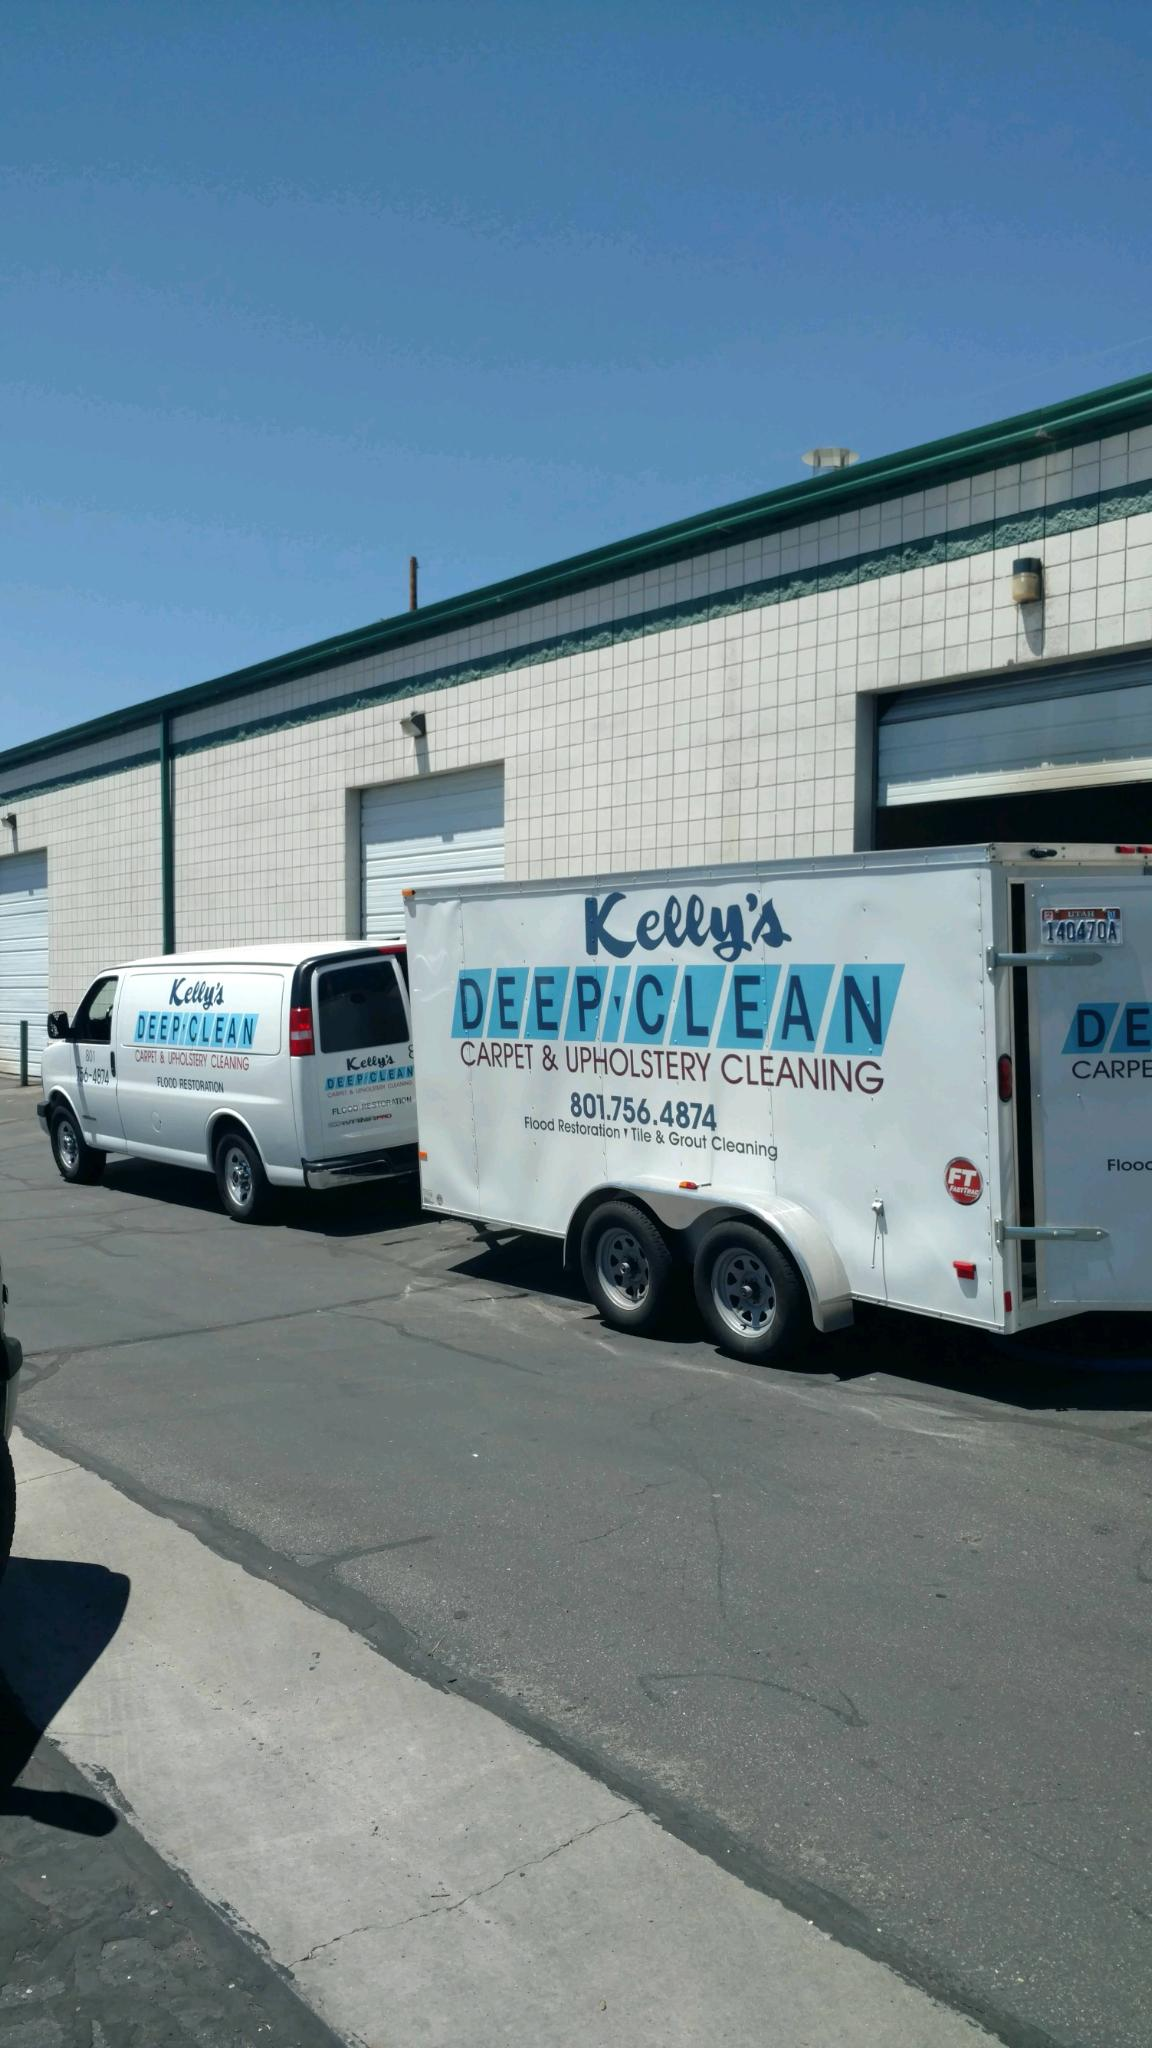 Kelly's Deep Clean Carpet & Upholstery Cleaning image 5